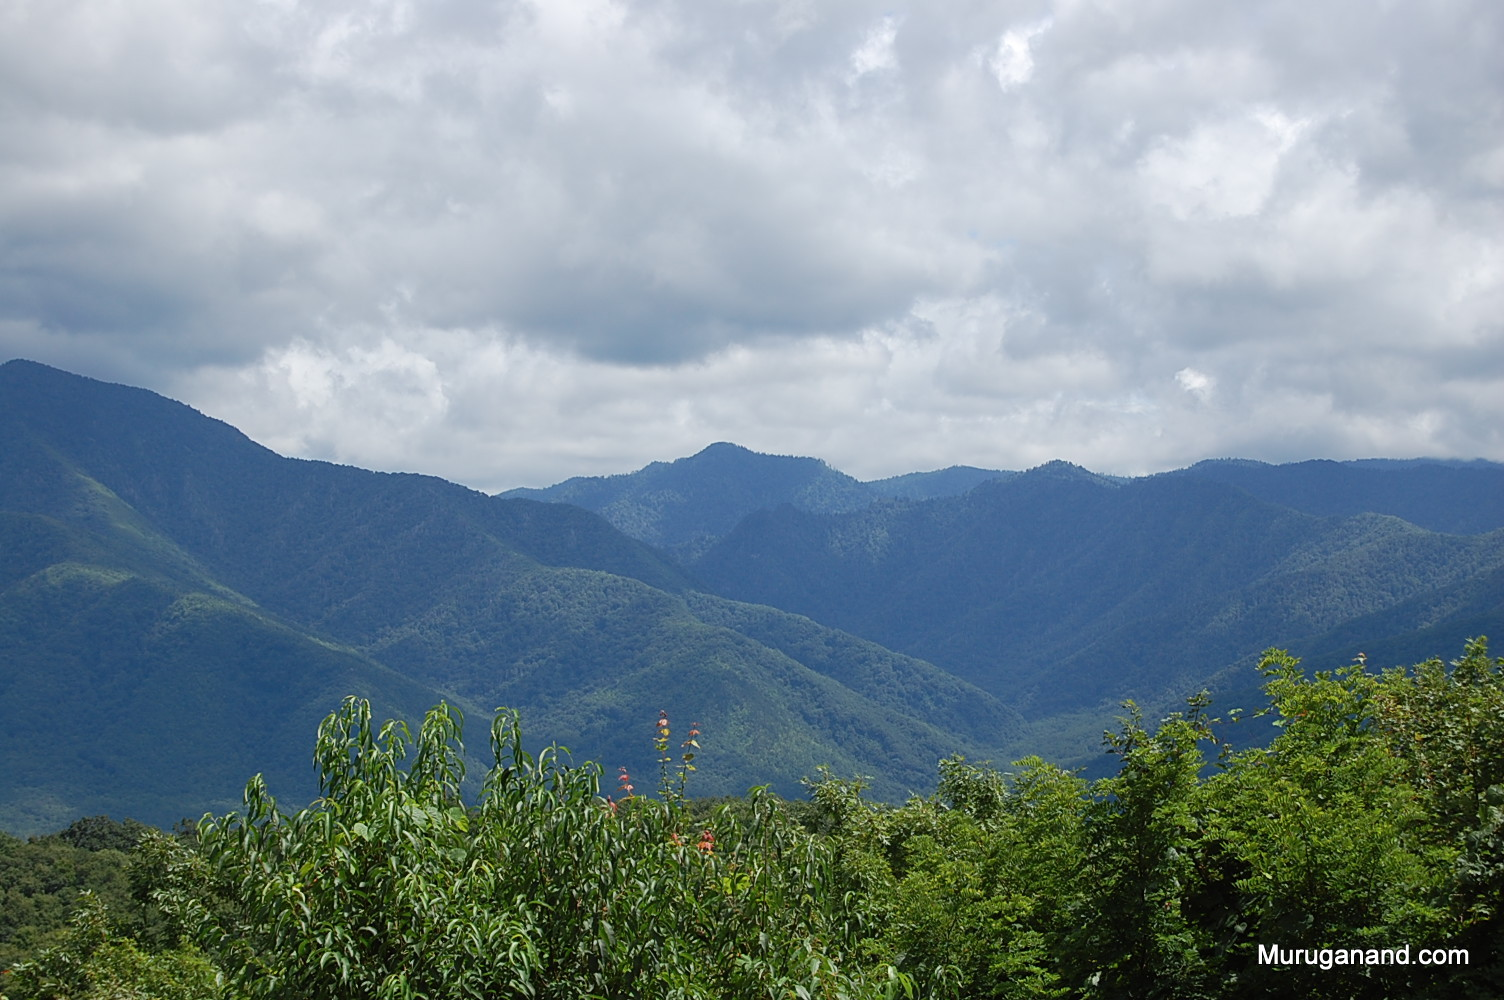 Location of actual Clingman's dome (at the center way back)